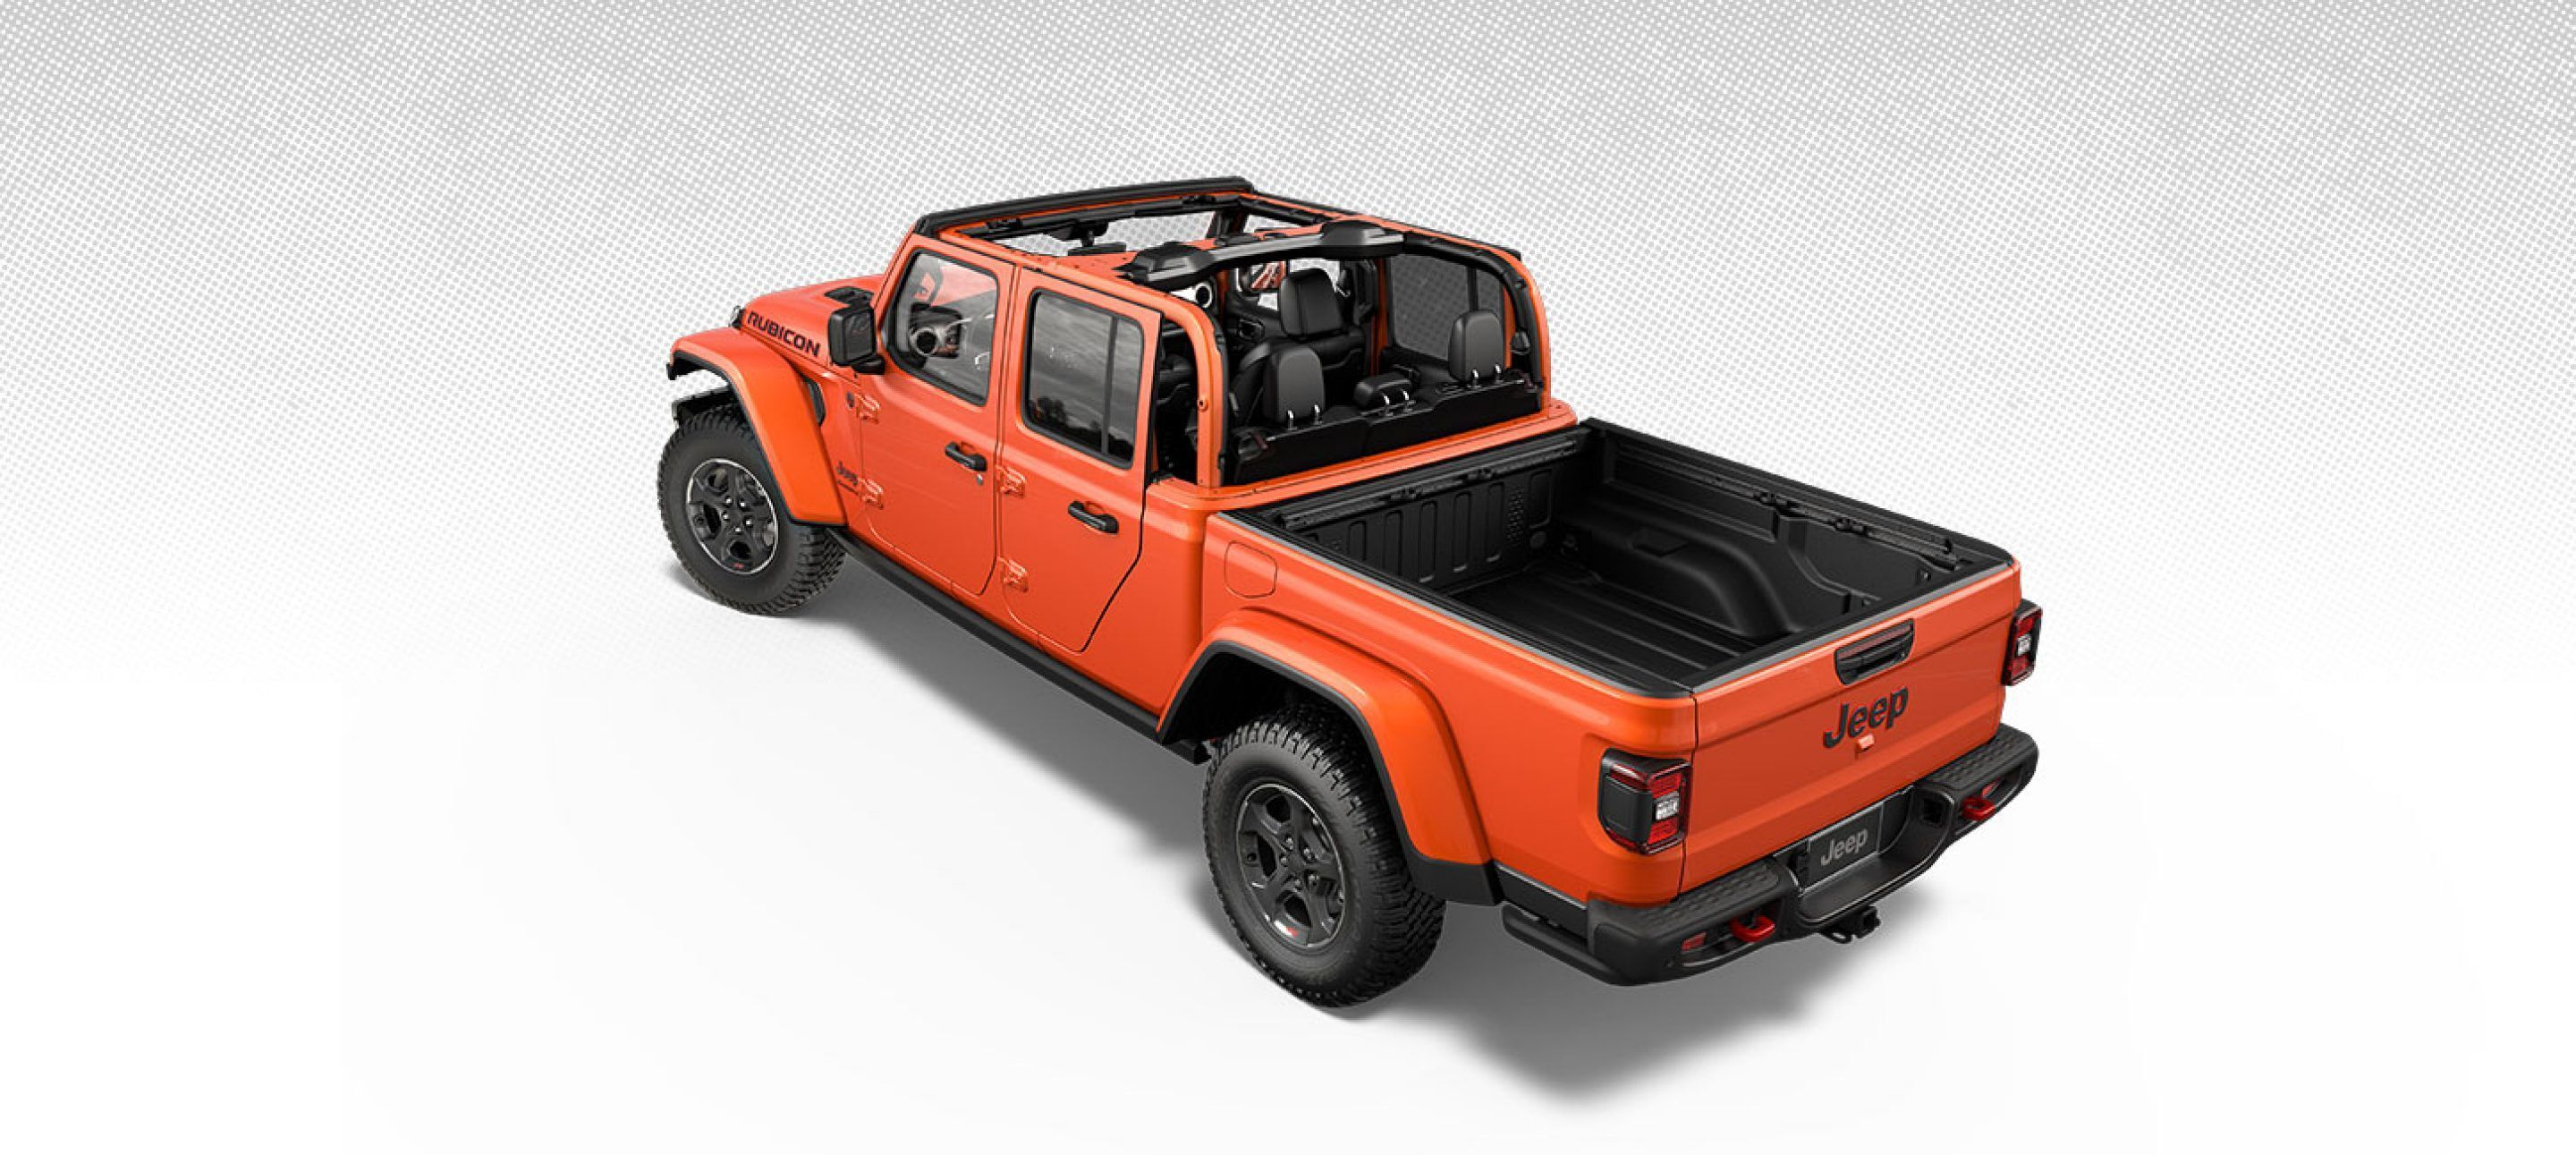 2020-Jeep-Gladiator-Exterior-Top-And-Doors-No-Top.jpg.image.2880.jpg